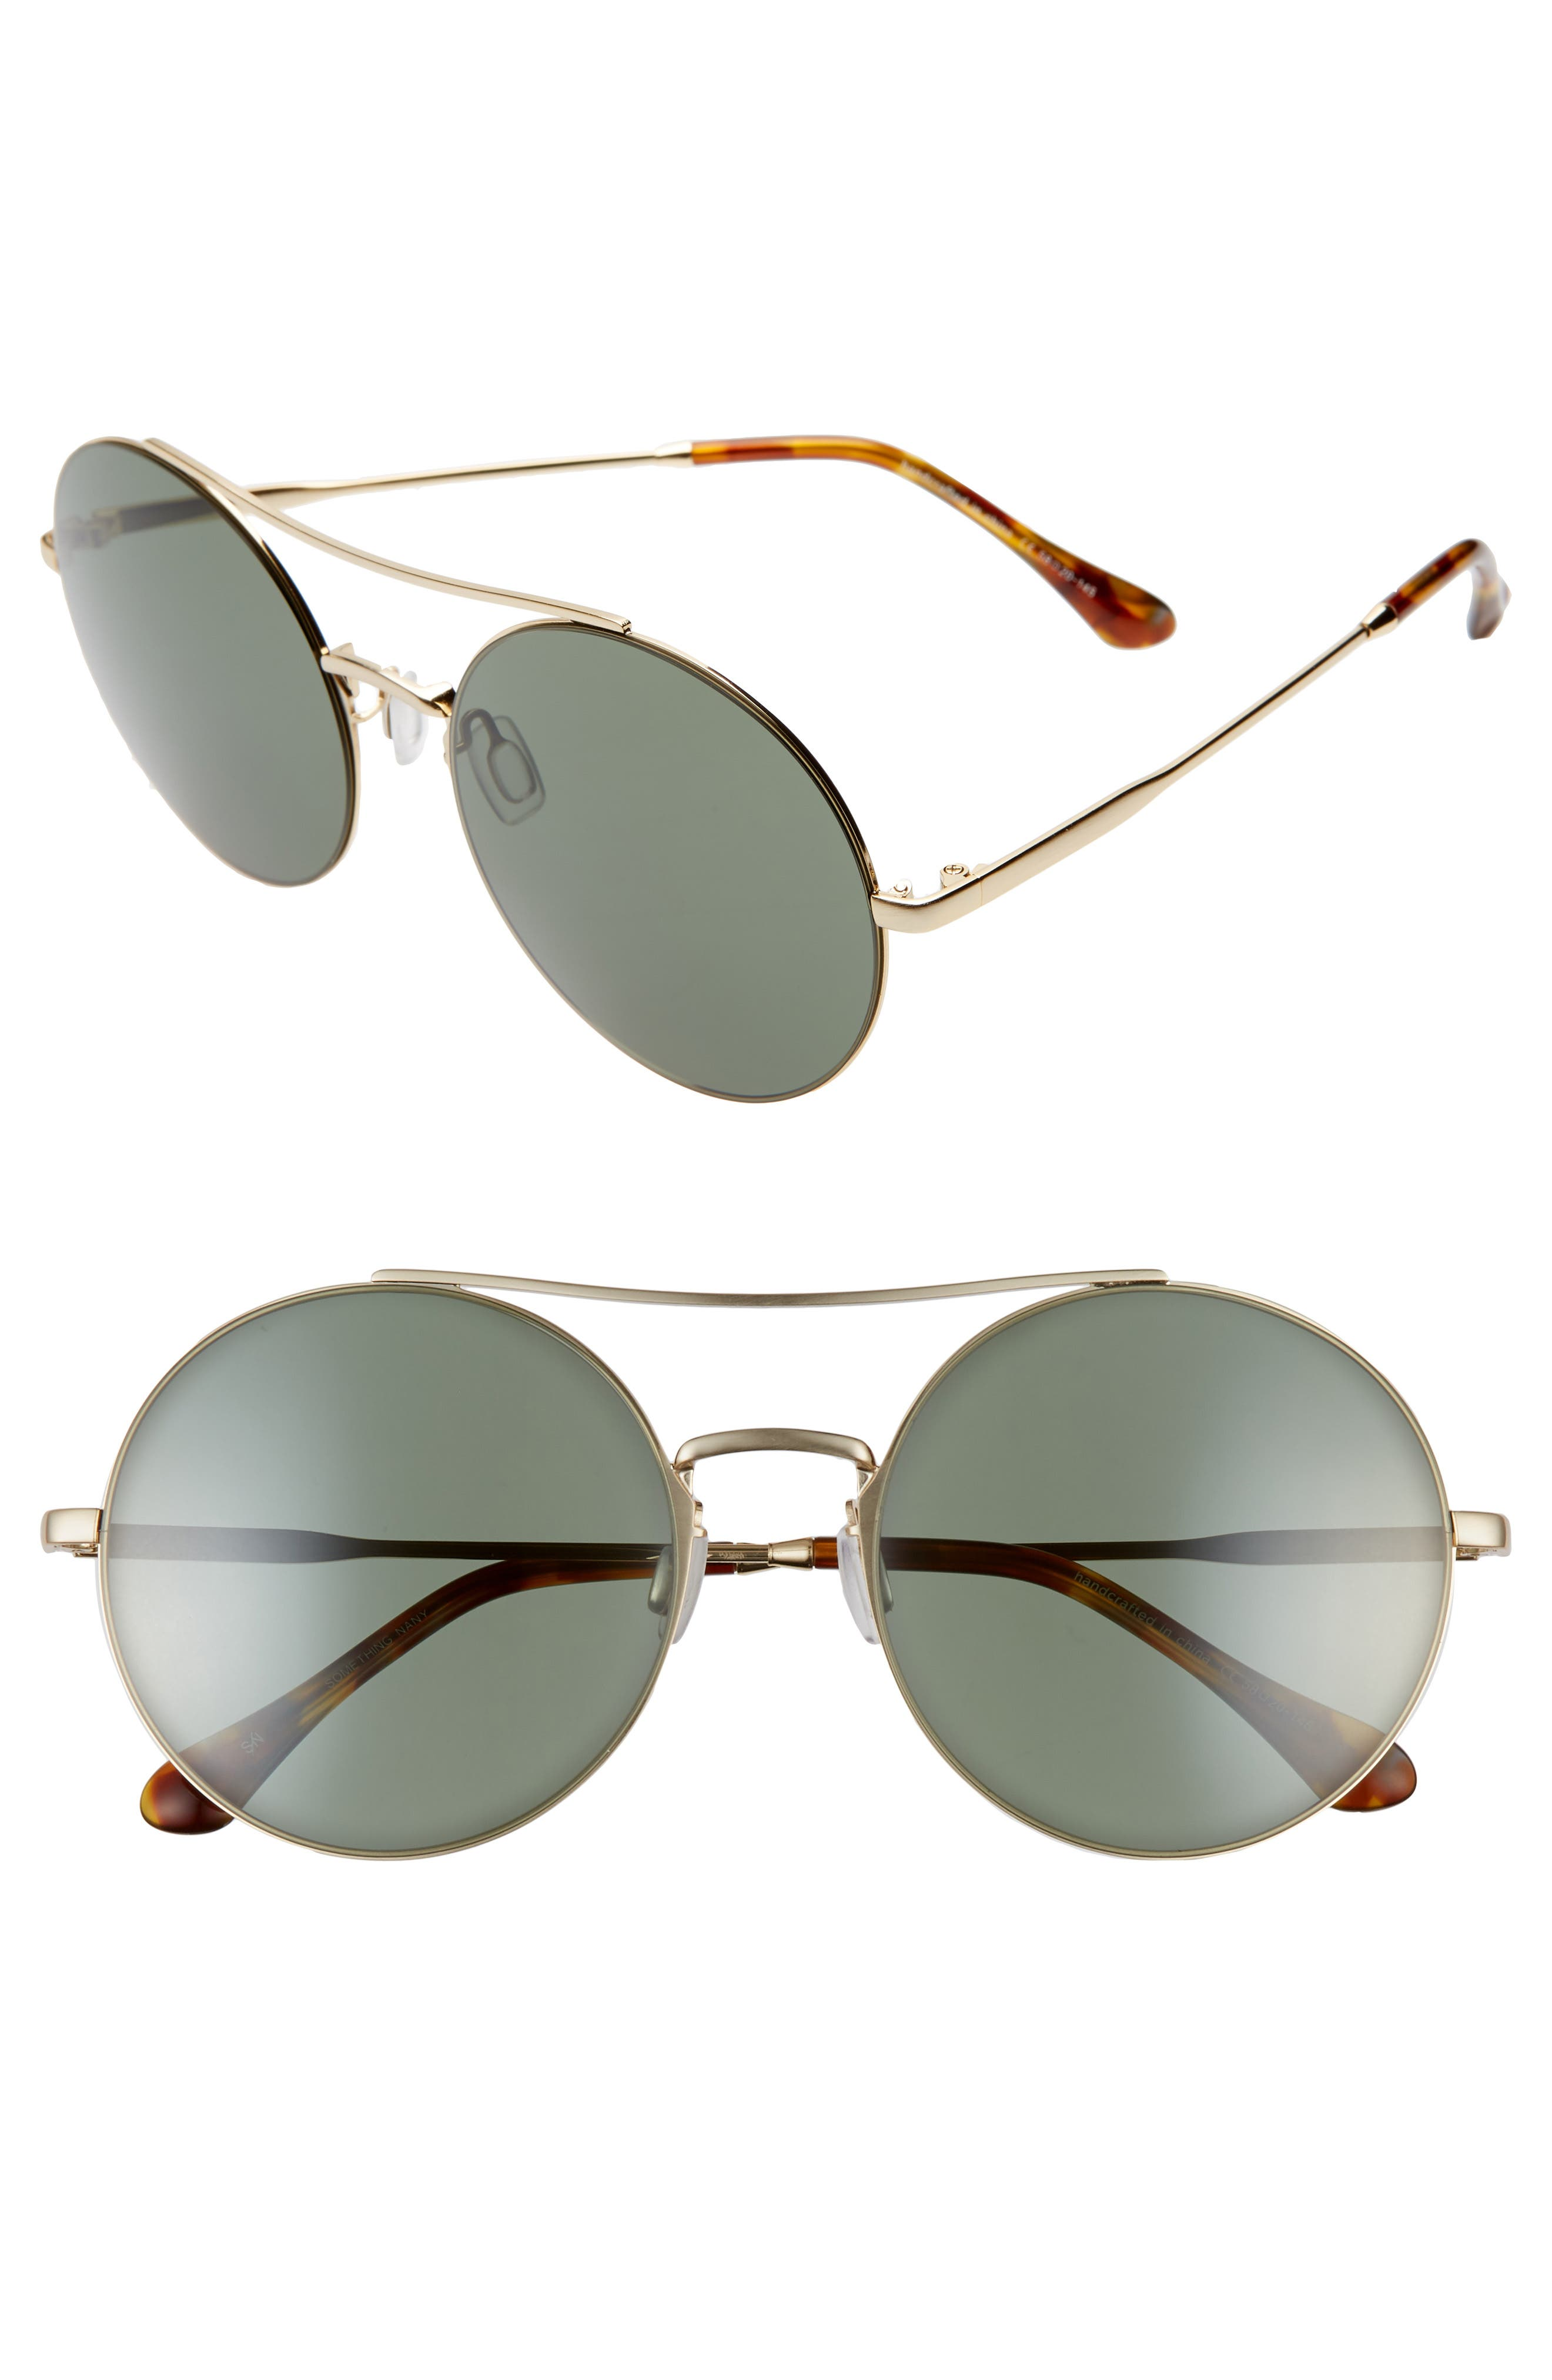 Something Navy 5m Round Aviator Sunglasses - Gold/ Green (Nordstrom Exclusive)